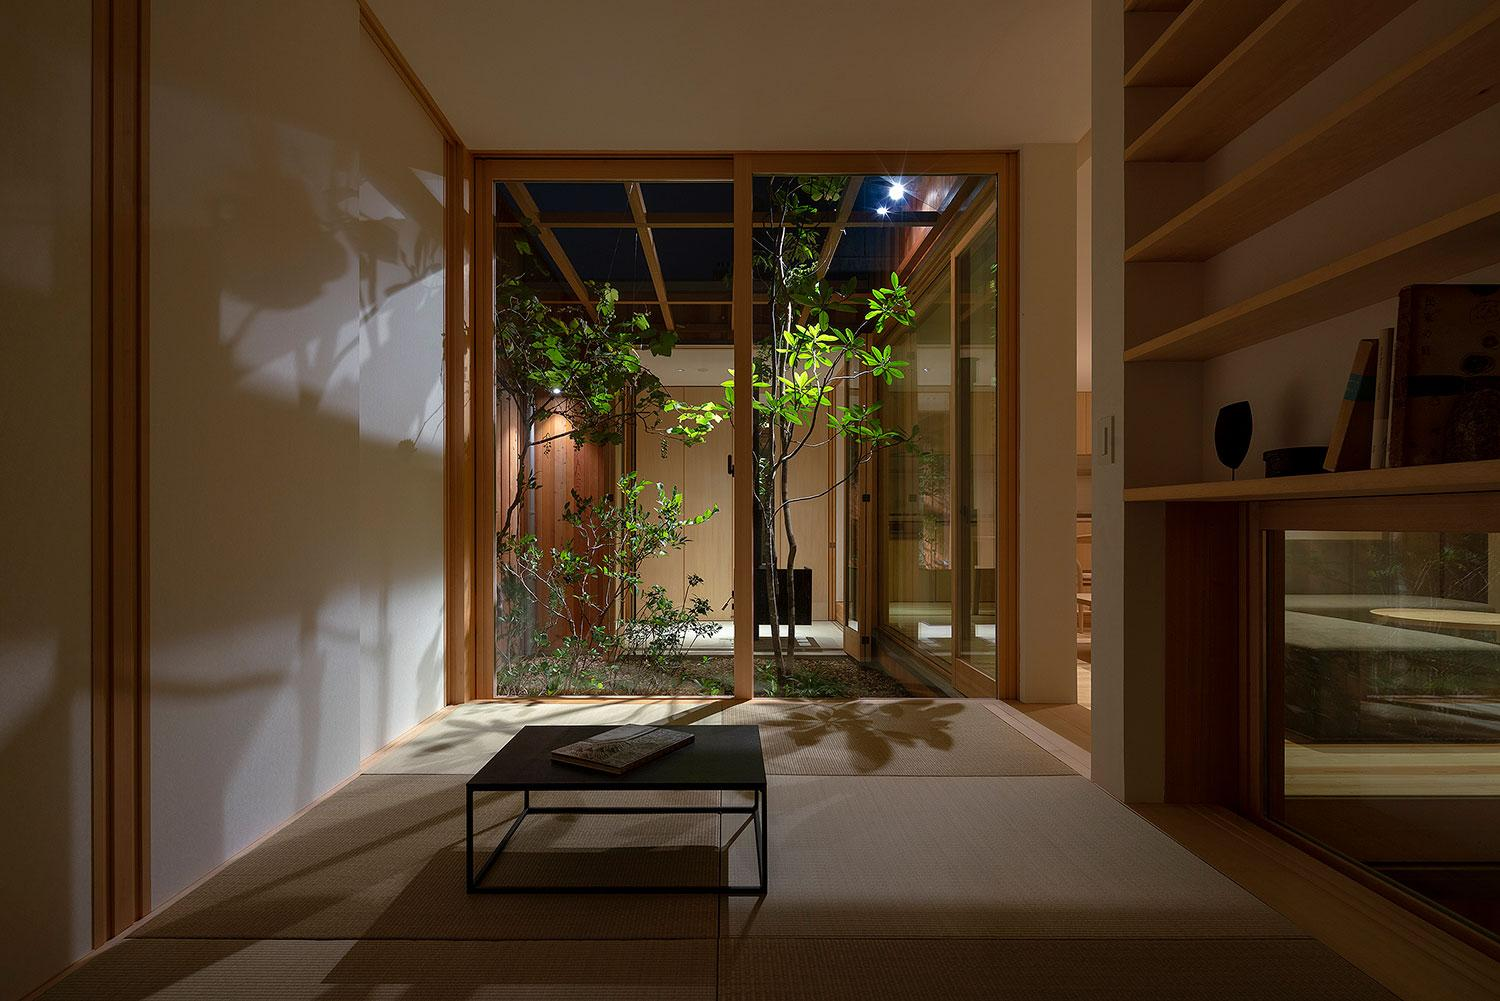 Experience the Beauty of All Four Seasons in this Wooden Bungalow in Japan